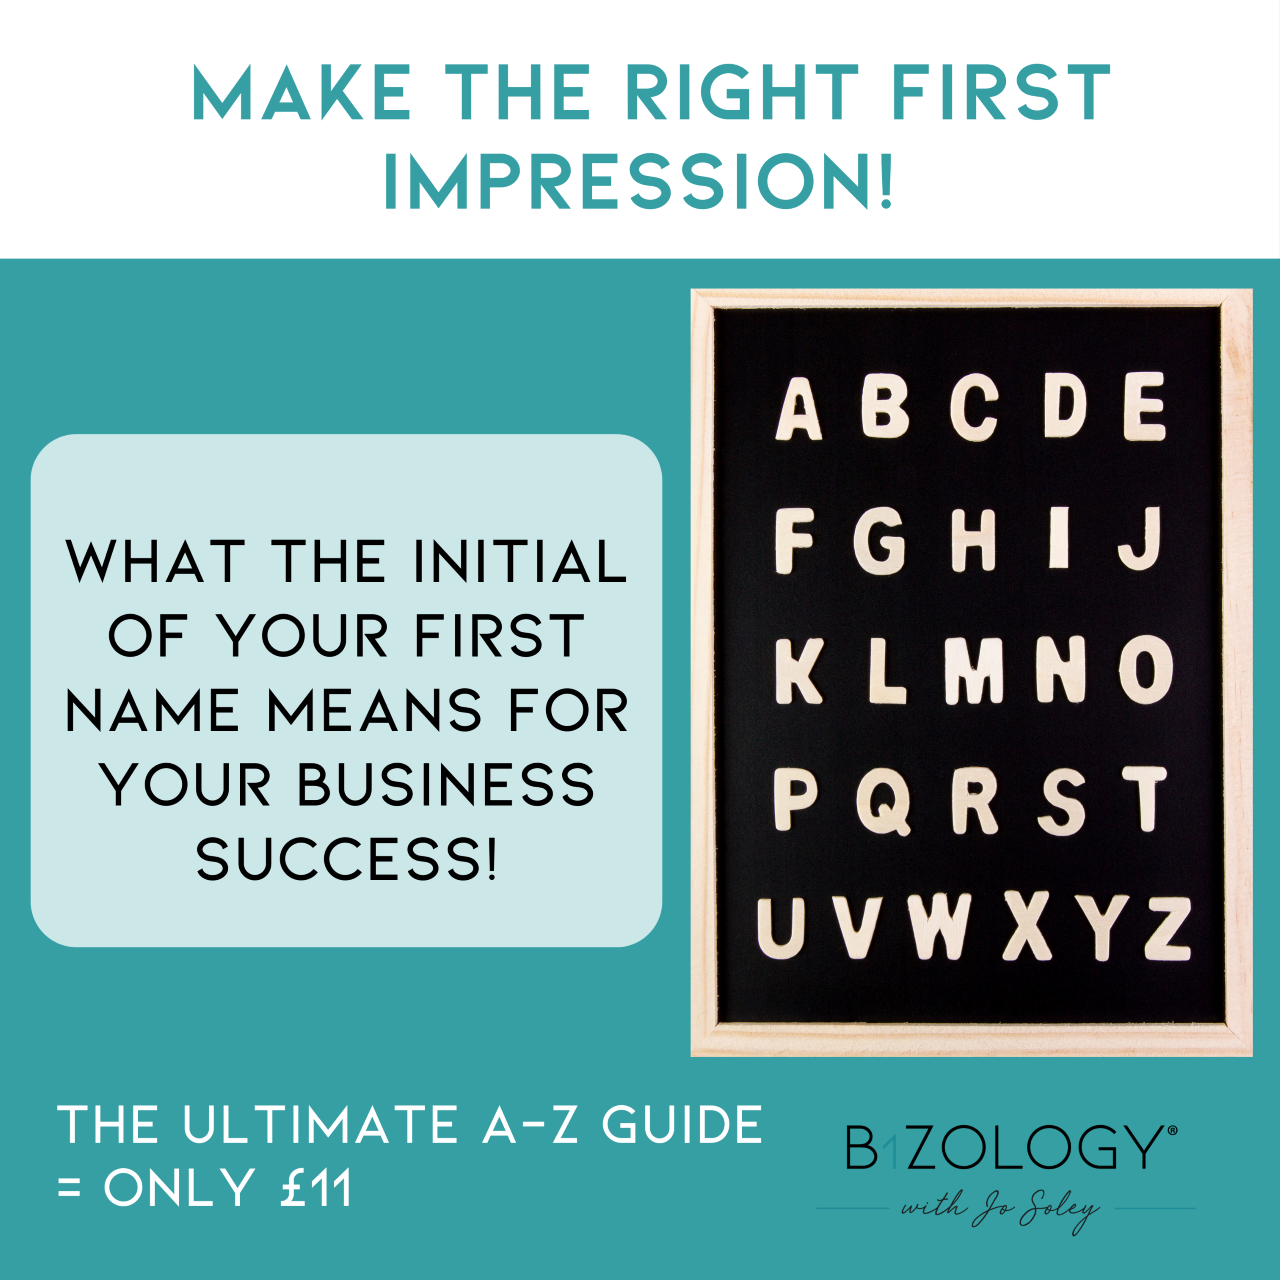 MAKE THE RIGHT FIRST IMPRESSION